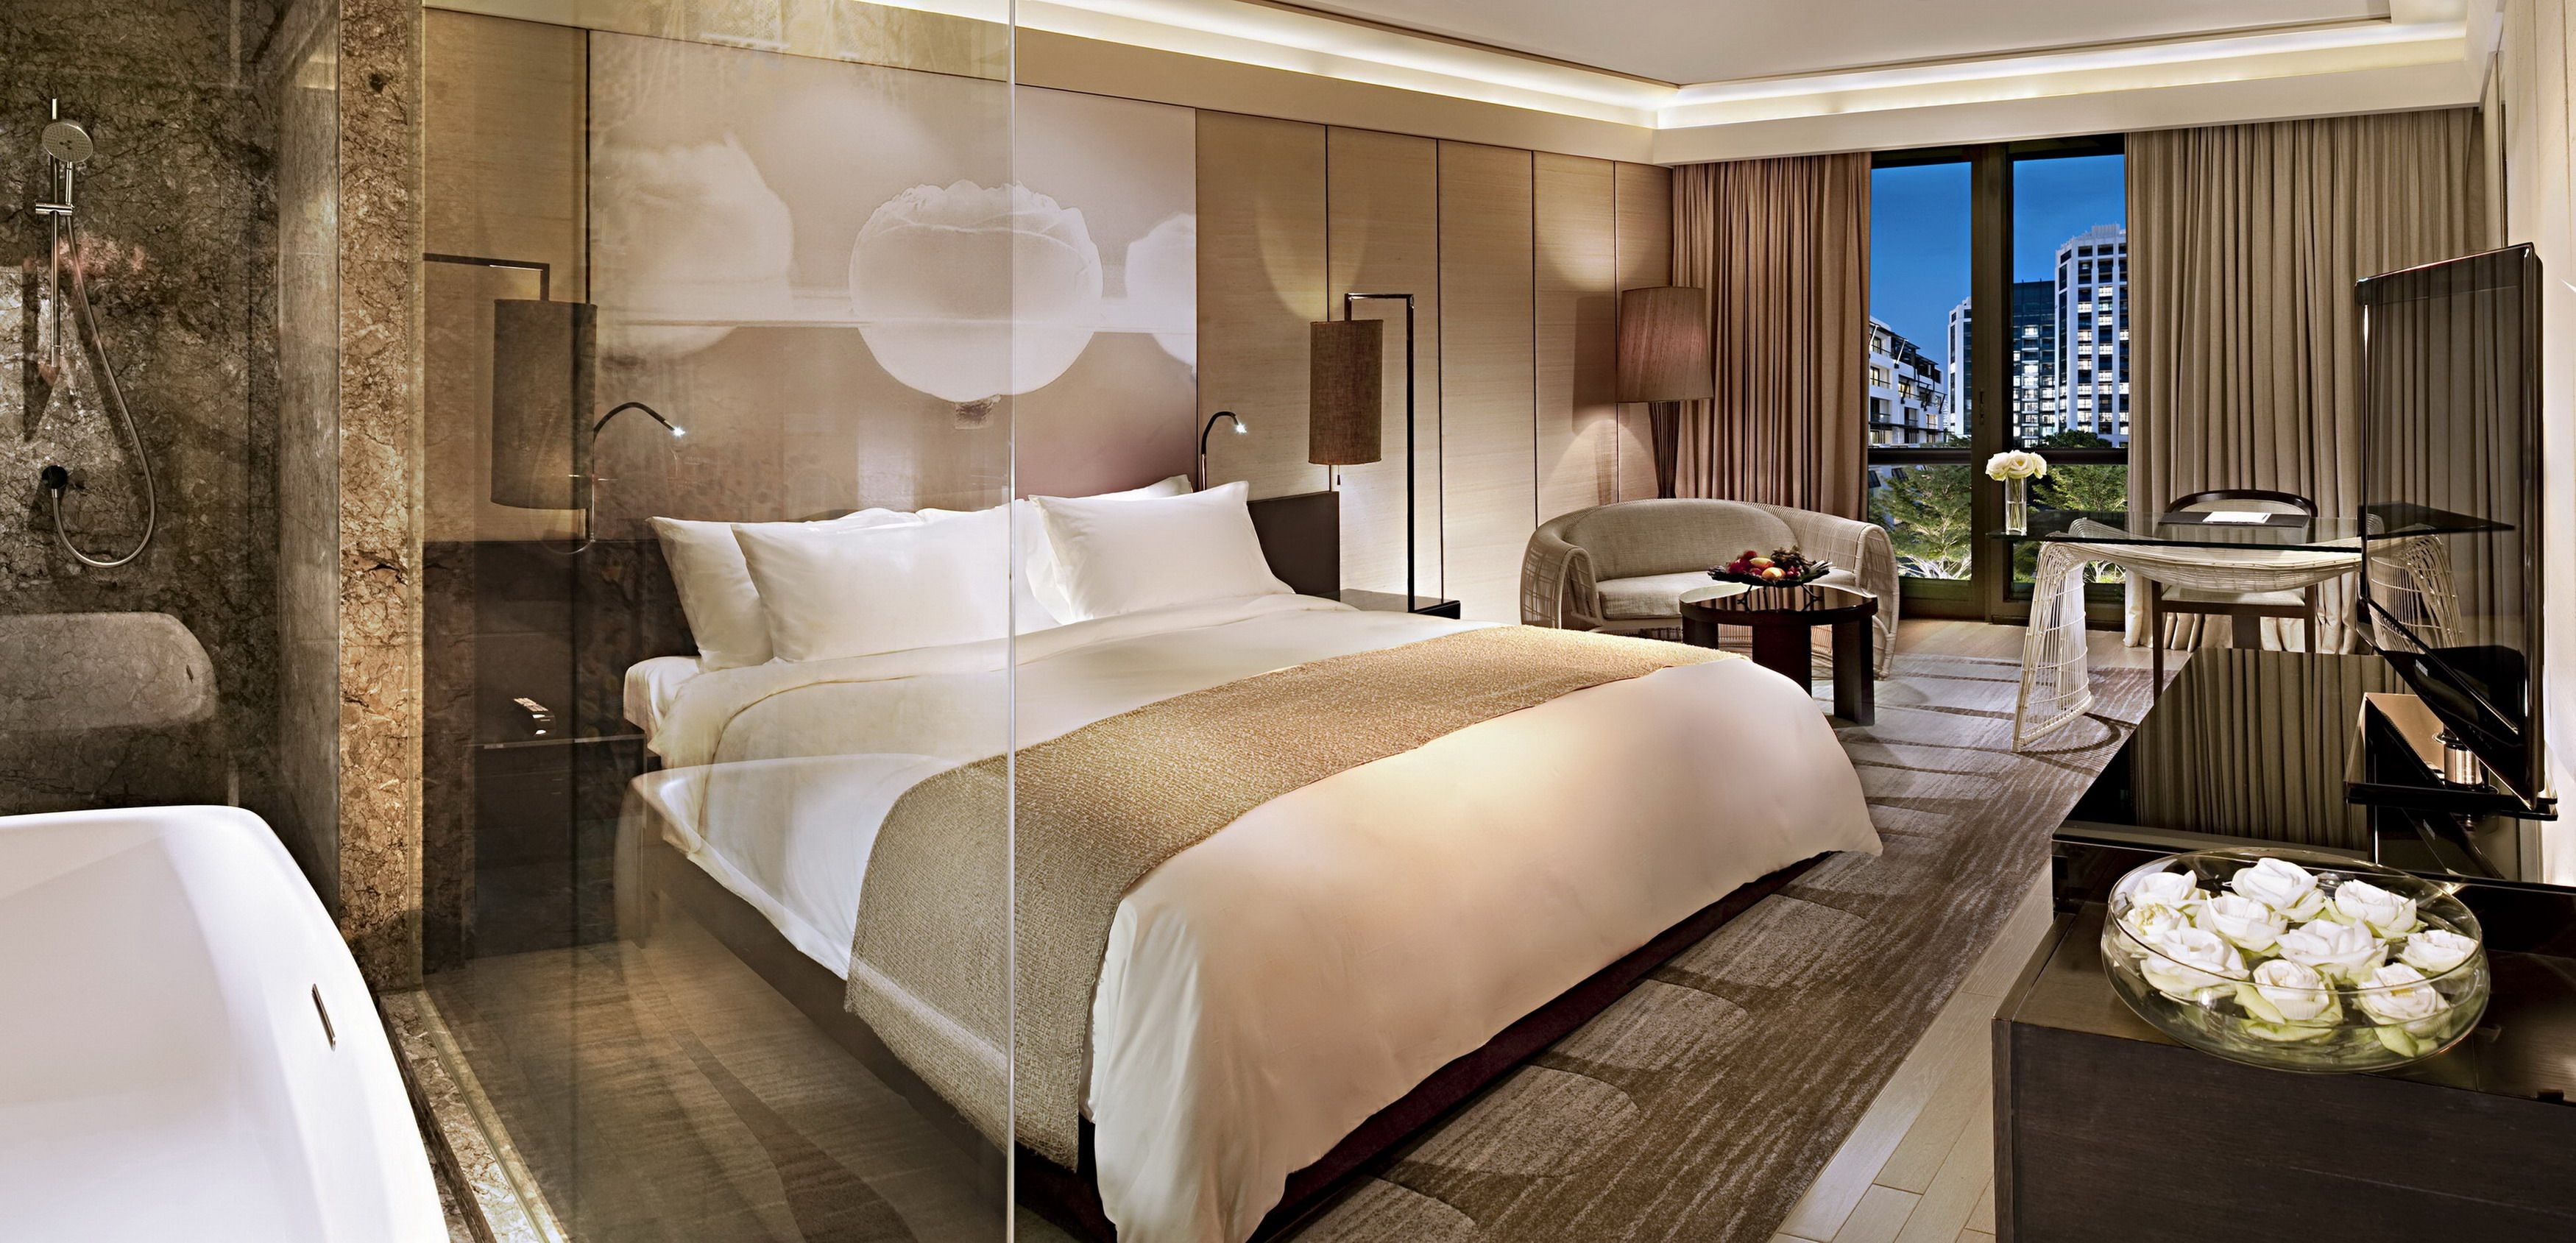 Luxury hotel rooms pictures new luxury kempinski hotel for Luxury hotel accommodation